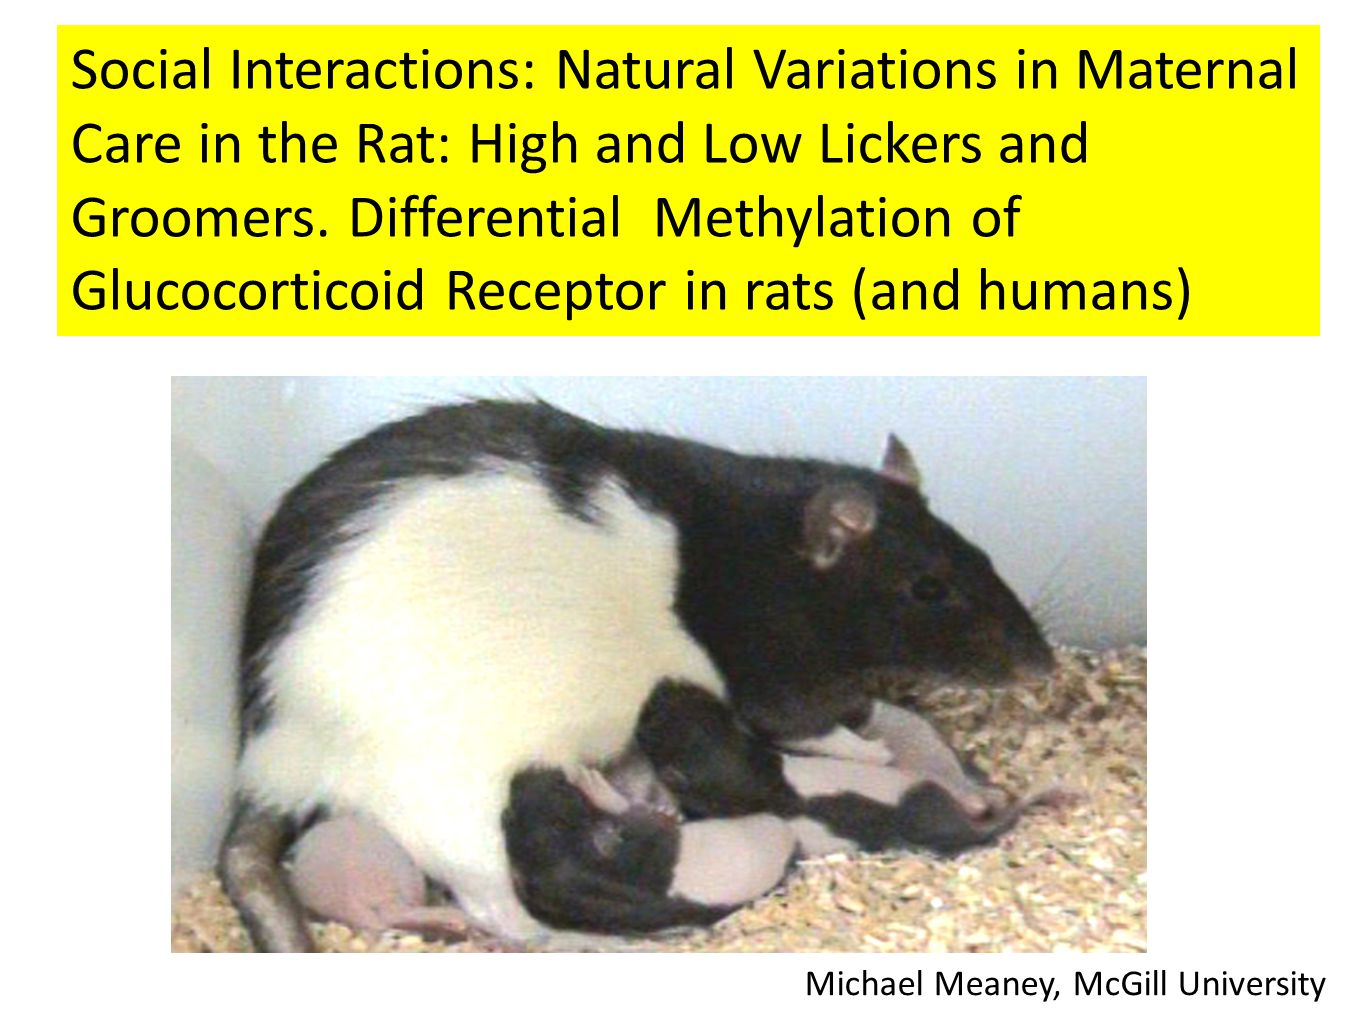 Social Interactions: Natural Variations in Maternal Care in the Rat: High and Low Lickers and Groomers.